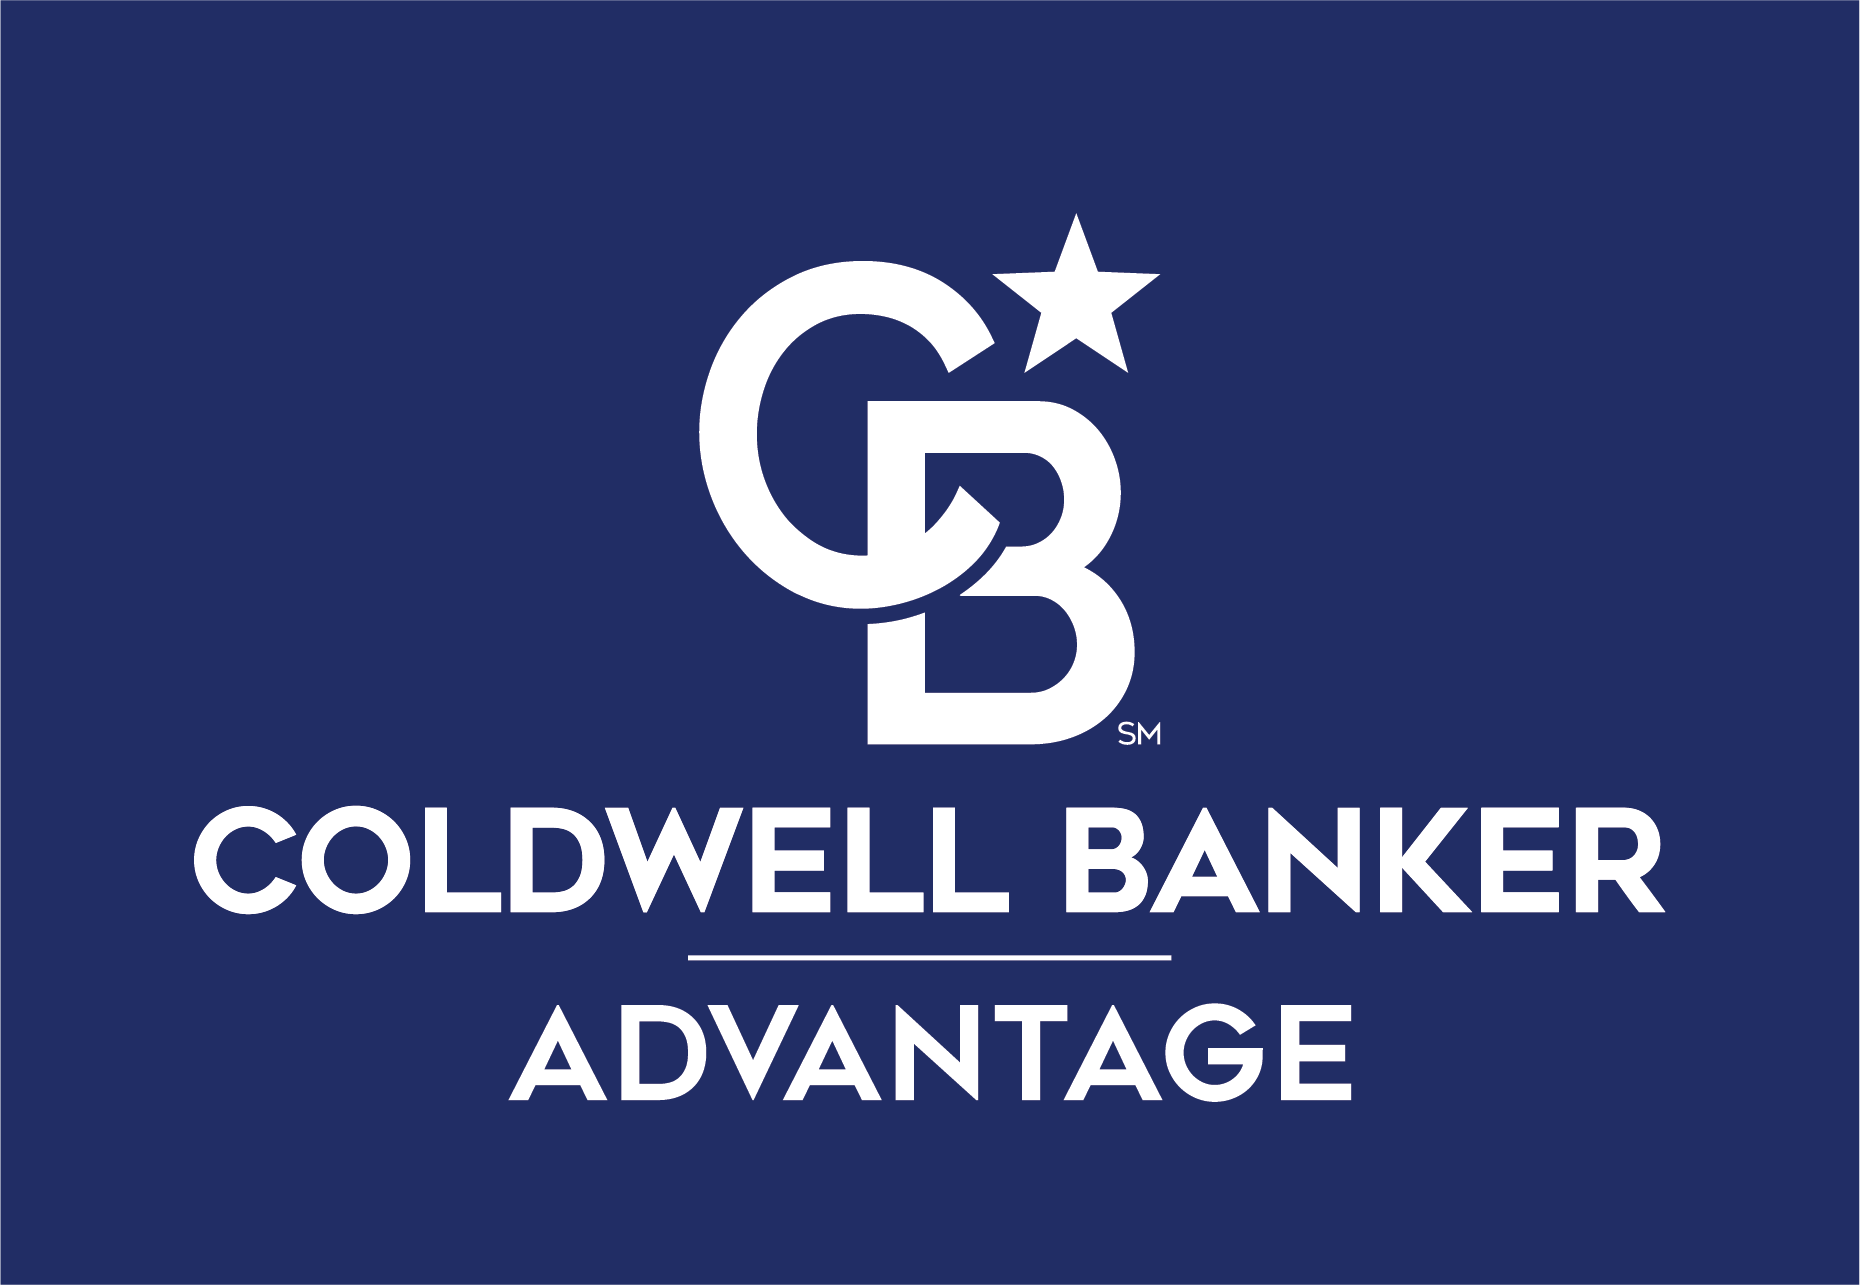 Rain Blackcloud - Coldwell Banker Advantage Logo